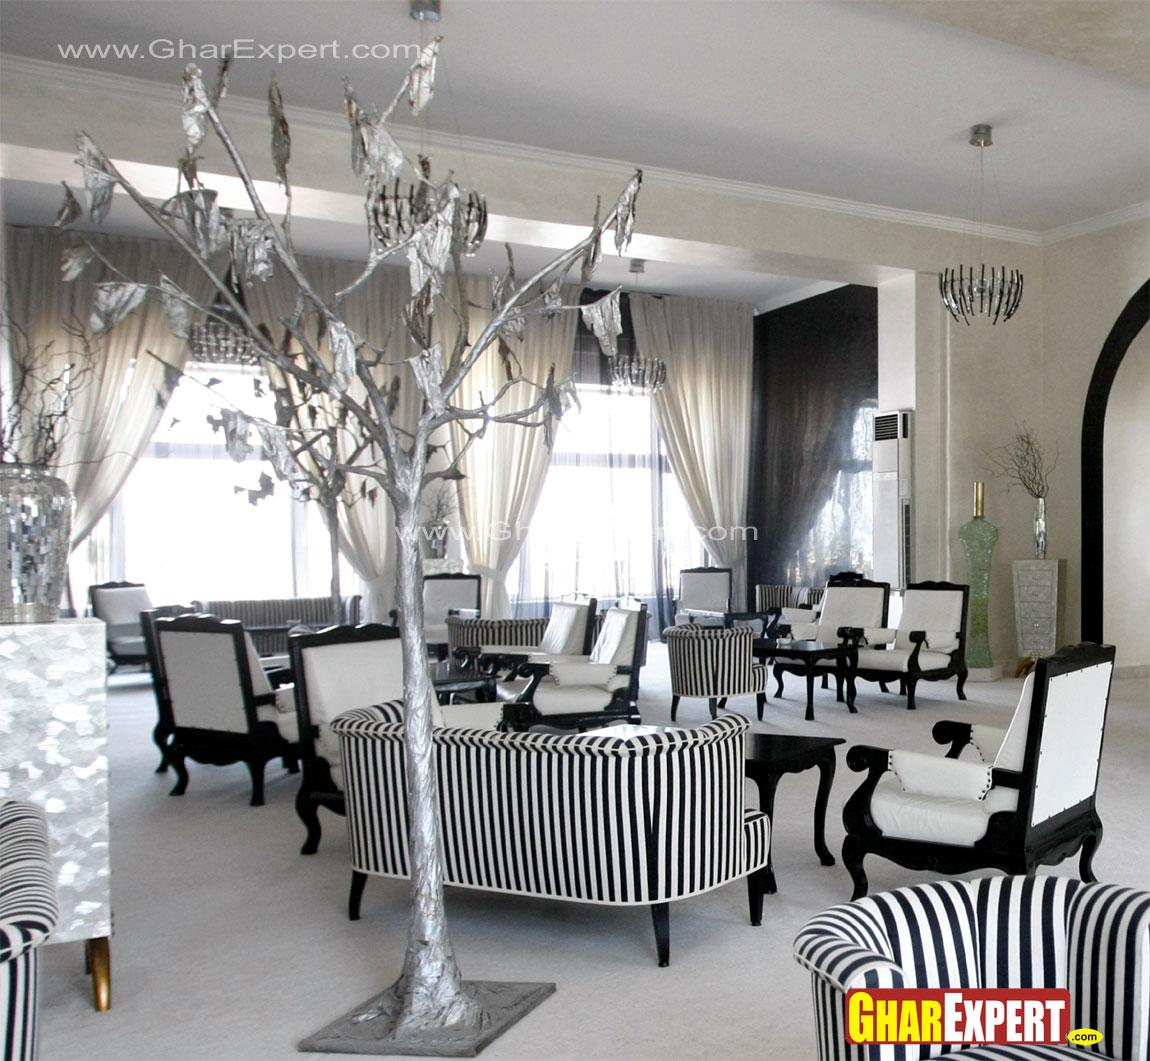 Living room with striped sofa ....